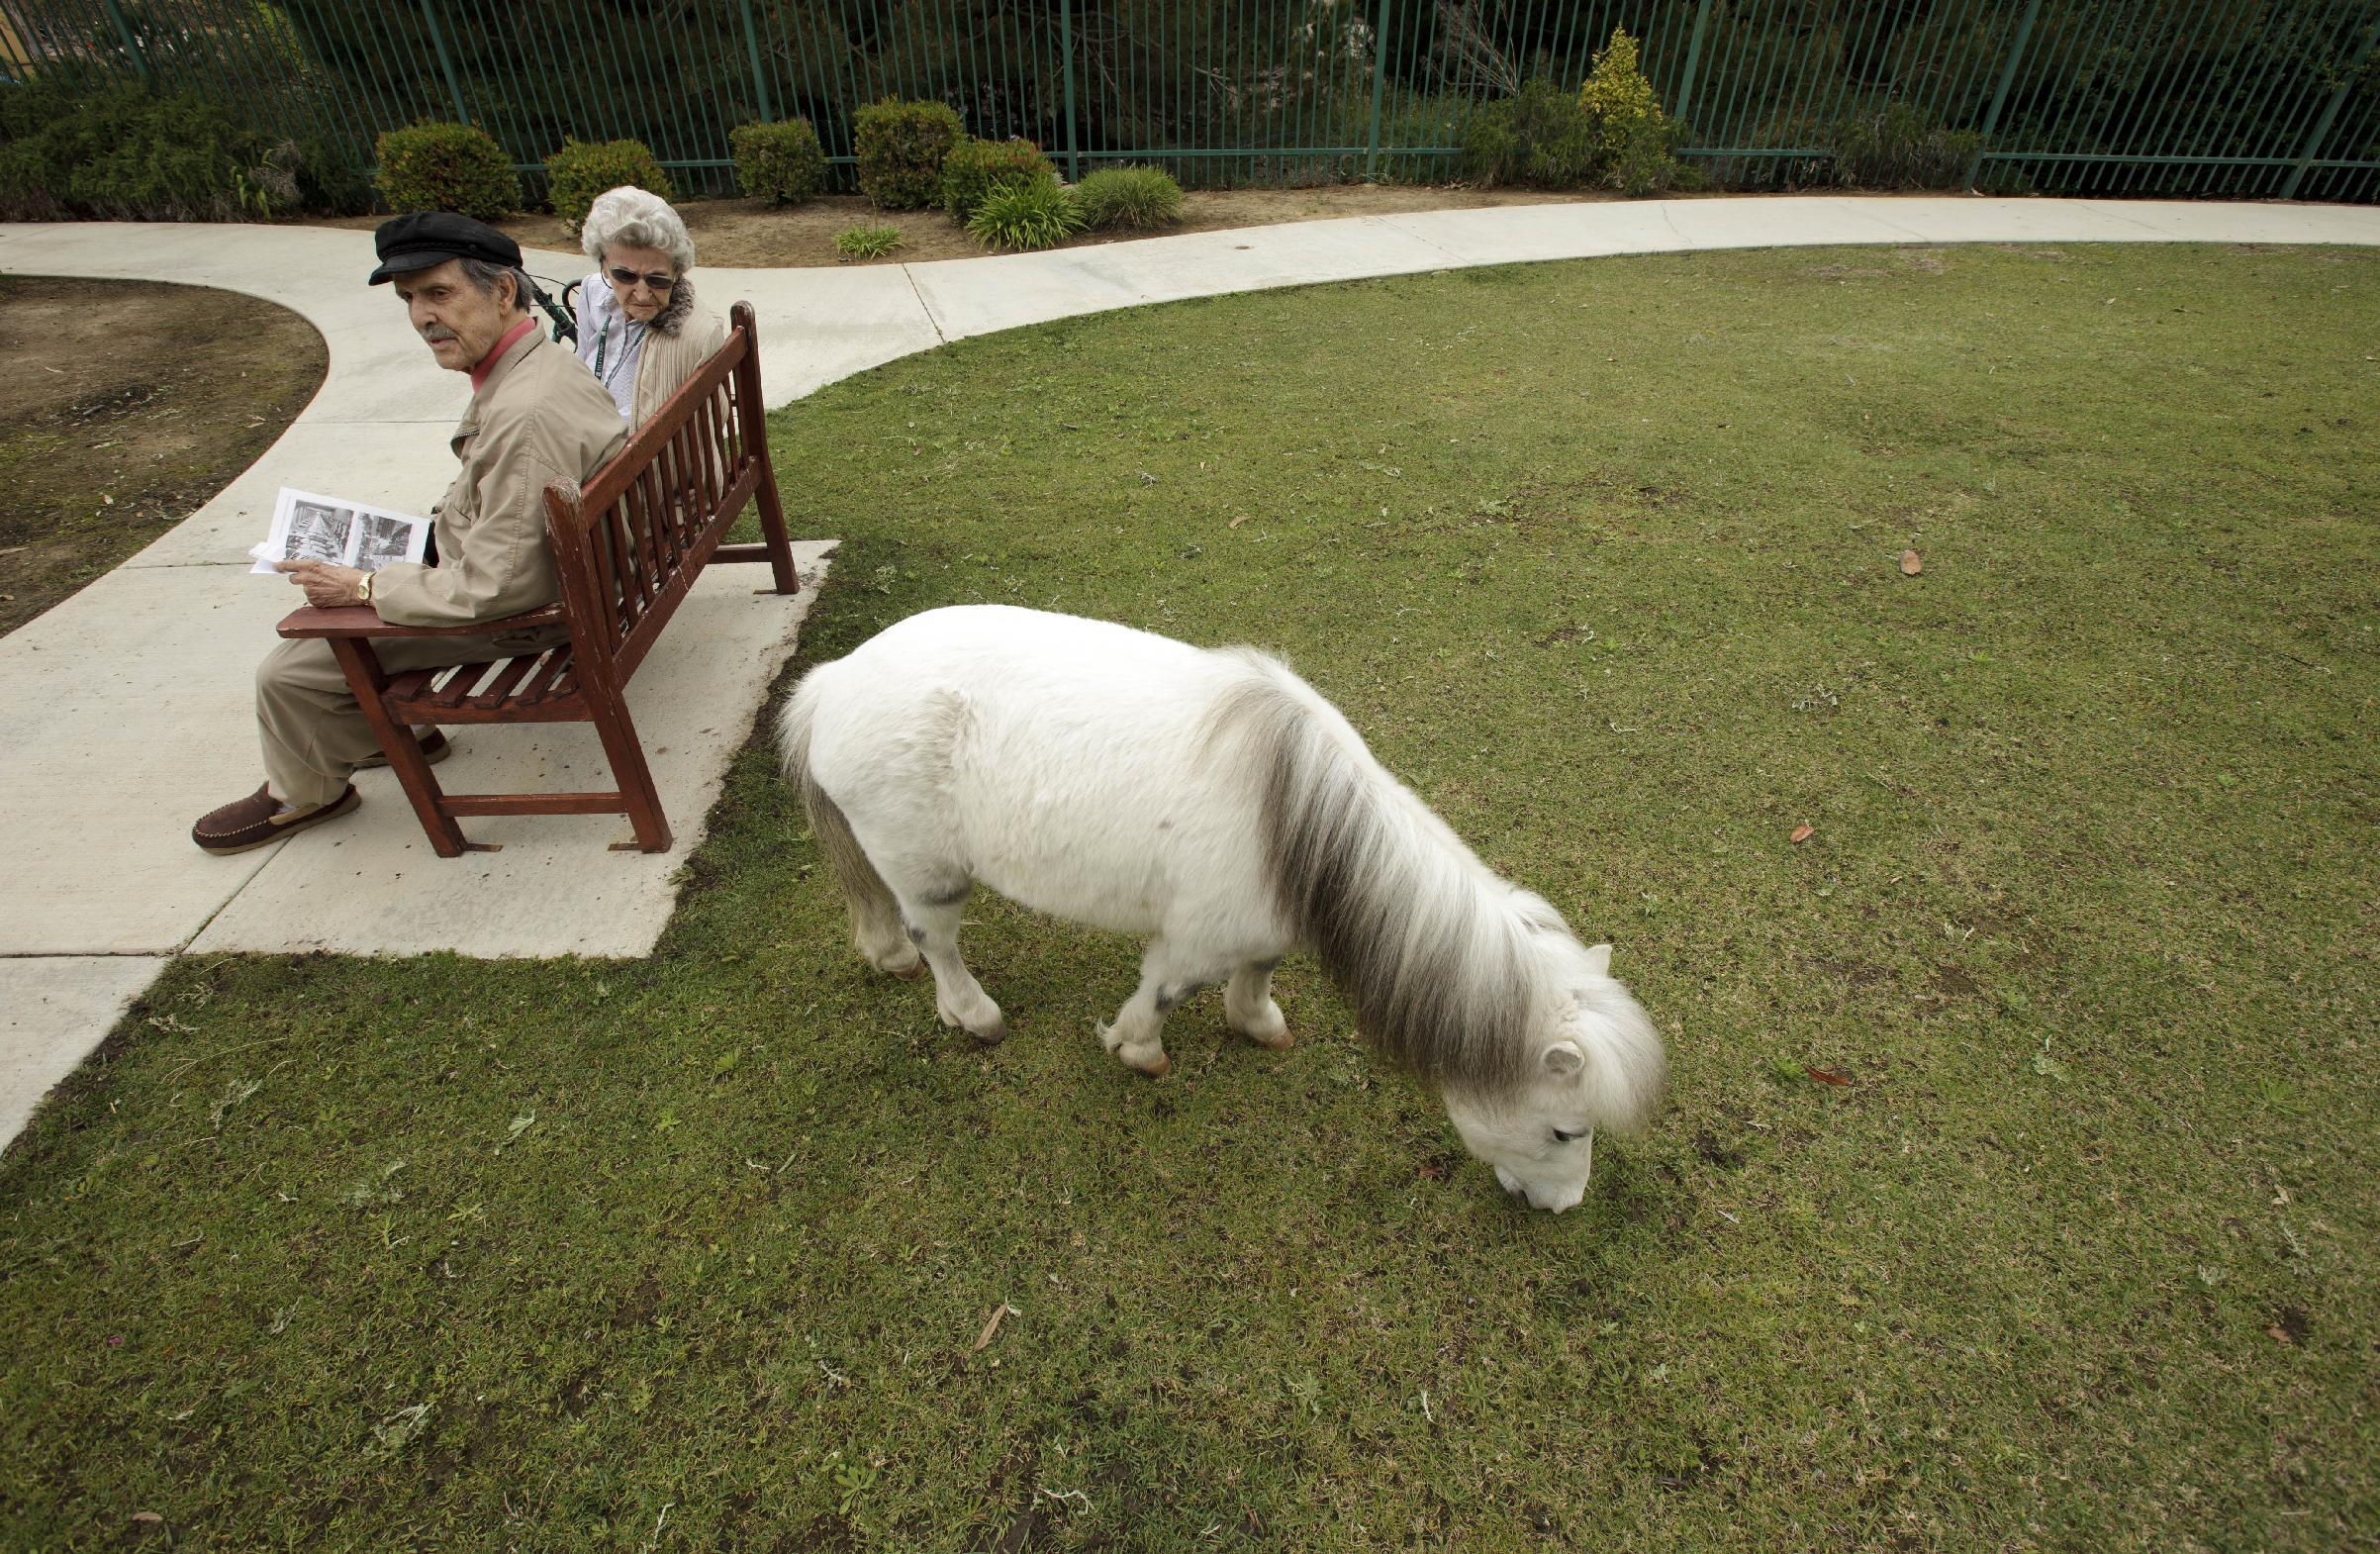 John Martinez, left, and Barbara Gray sit on a bench as a miniature horse grazes at the Silverado Senior Living Center Tuesday, May 1, 2012, in Encinitas, Calif. At the senior center, residents are encouraged to bring their pets. Everything from miniature horses to chinchillas can be found on the grounds, and residents benefit from frequent contact with the pets. (AP Photo/Gregory Bull)